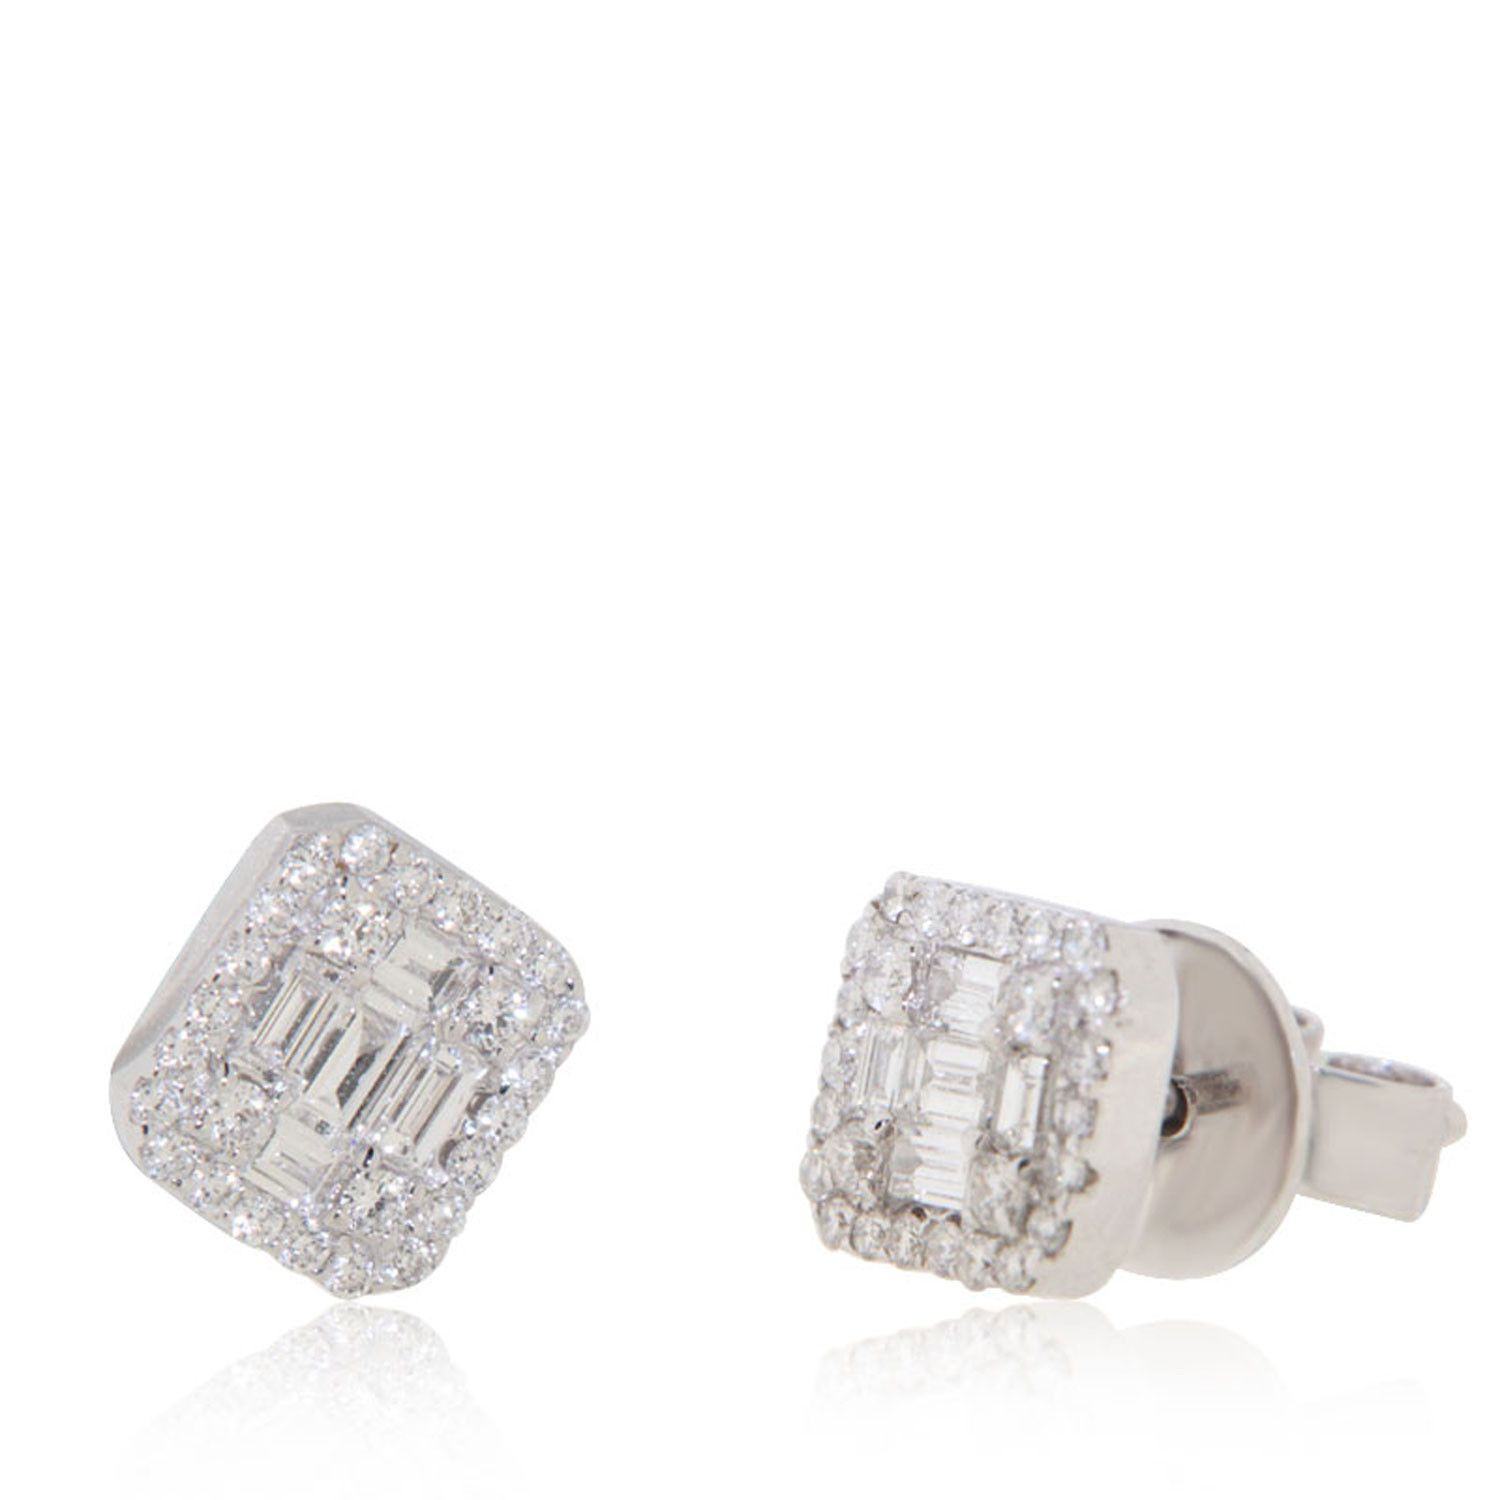 218a3821e86c0 Rectangular diamond stud earrings in 2019 | Myron-Earrings | Diamond ...